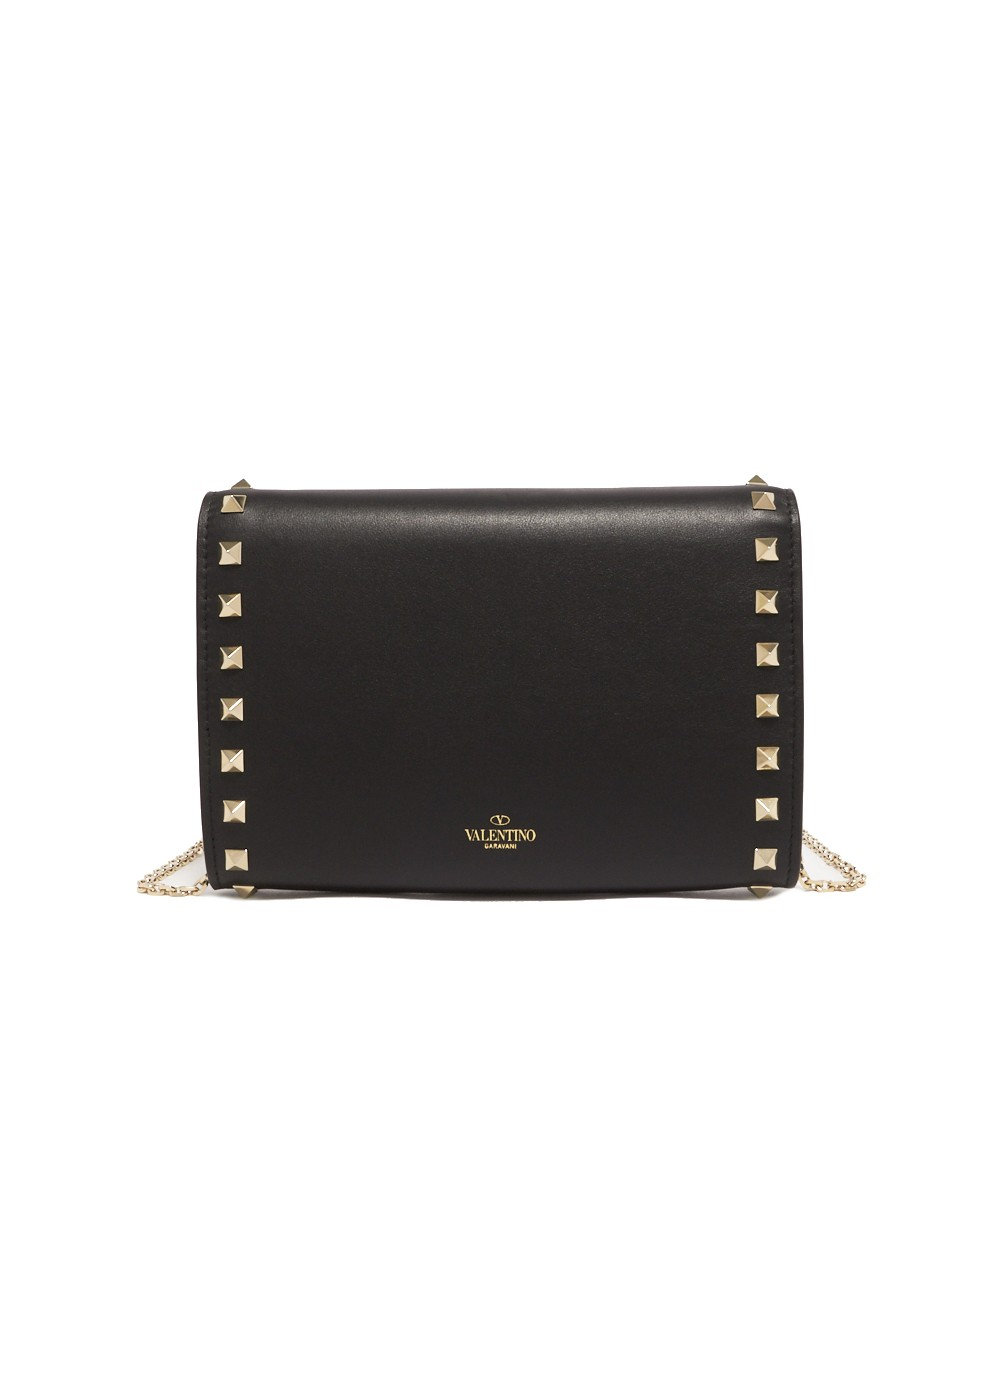 【最大32%OFF】ROCKSTUD ZIP AROUND WALLET|NERO|レディース財布|VALENTINO_(TI)